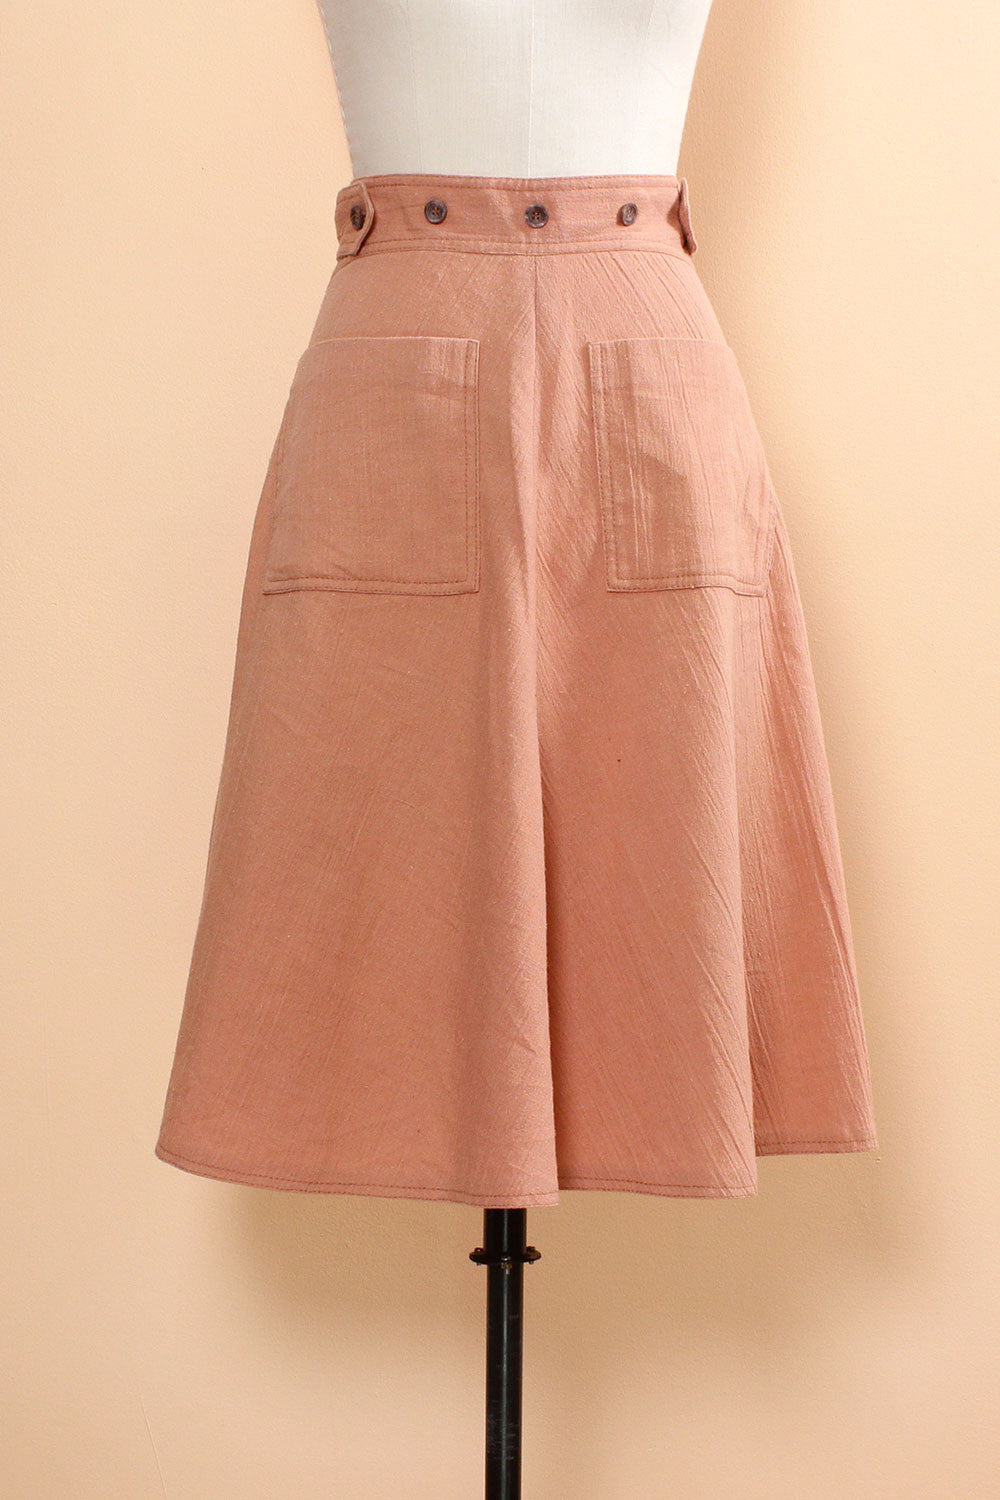 Peaches Skirt S/M